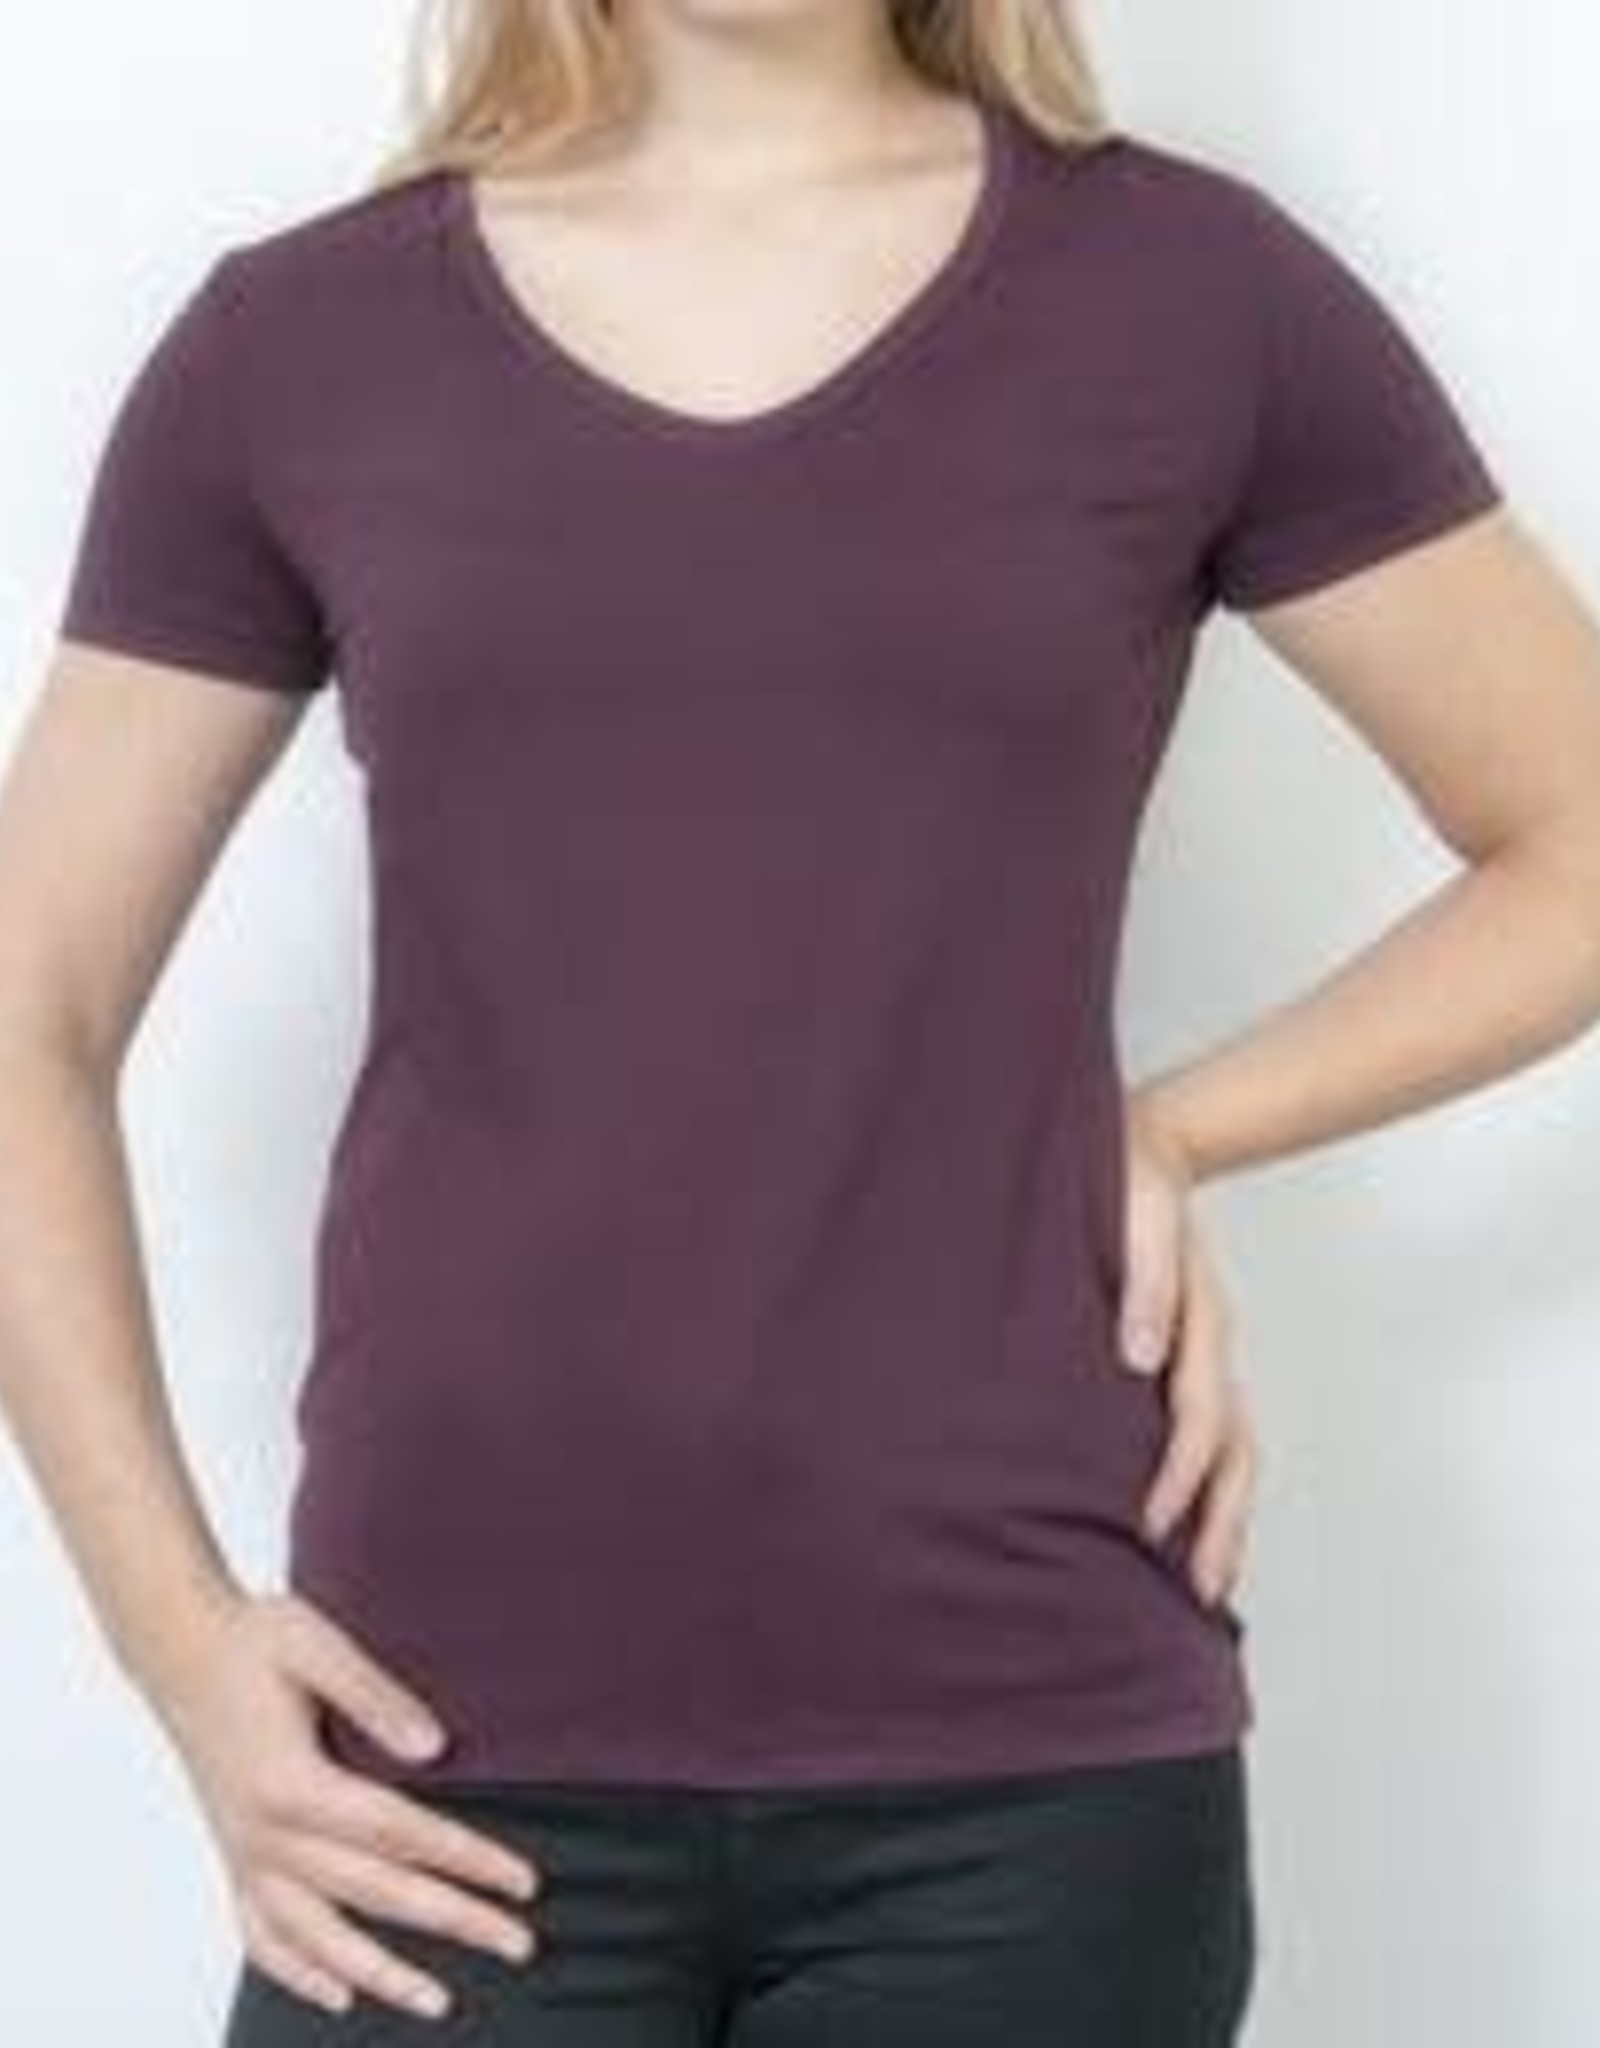 Livness Inc. V-Neck Tee